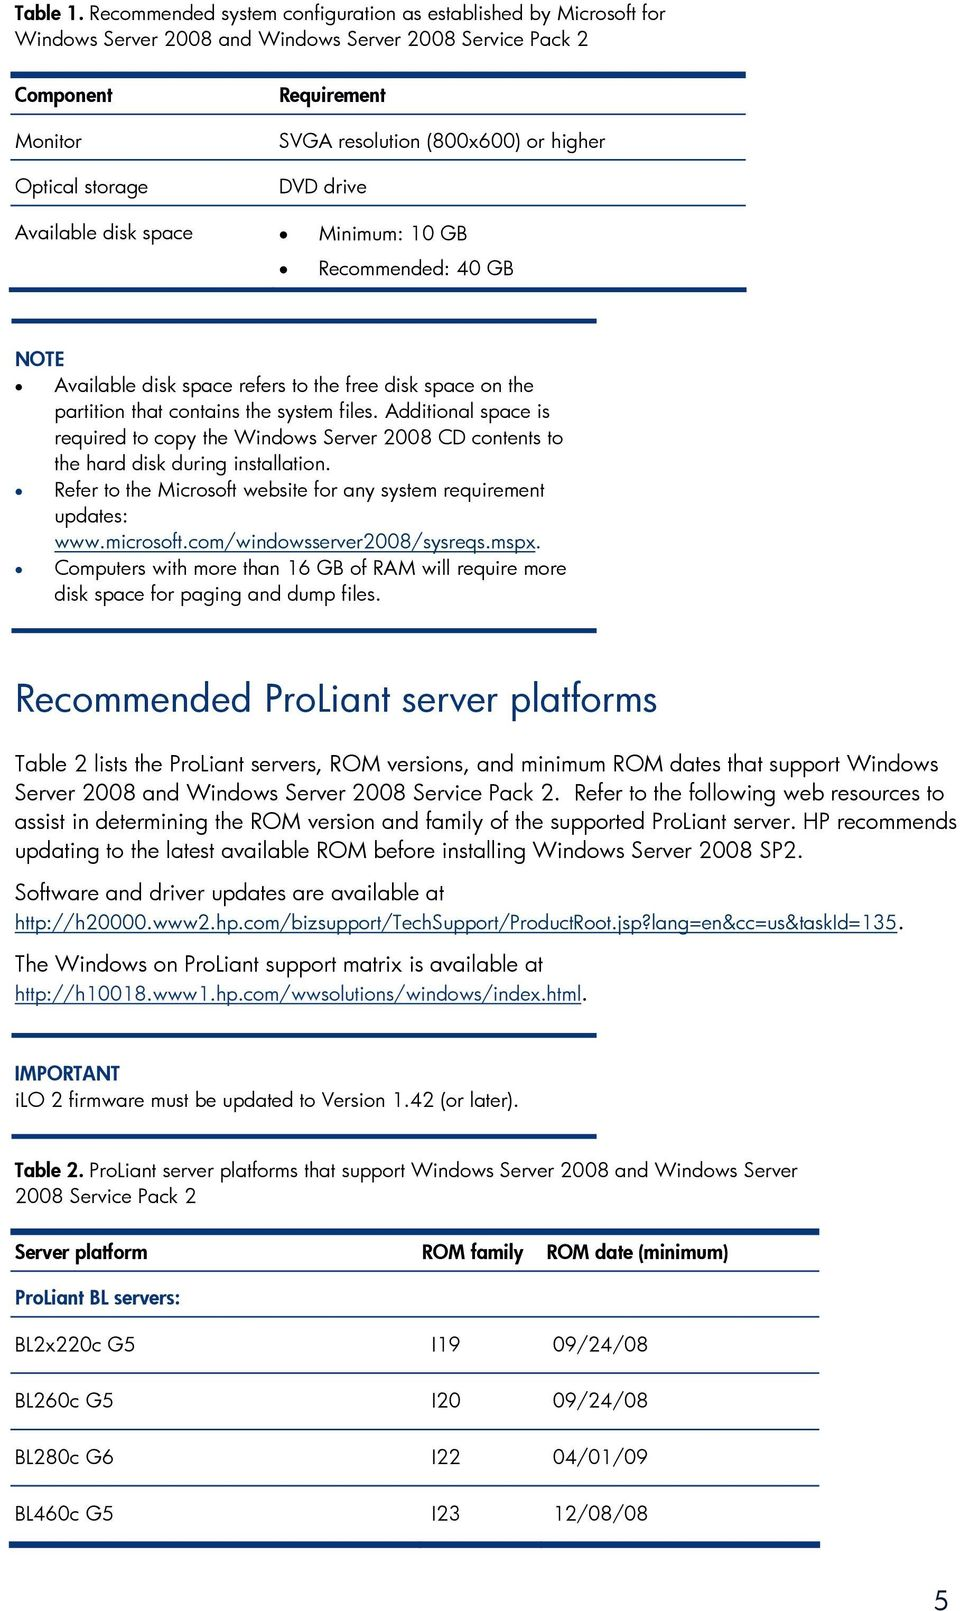 Implementing Microsoft Windows Server 2008 Service Pack 2 on HP